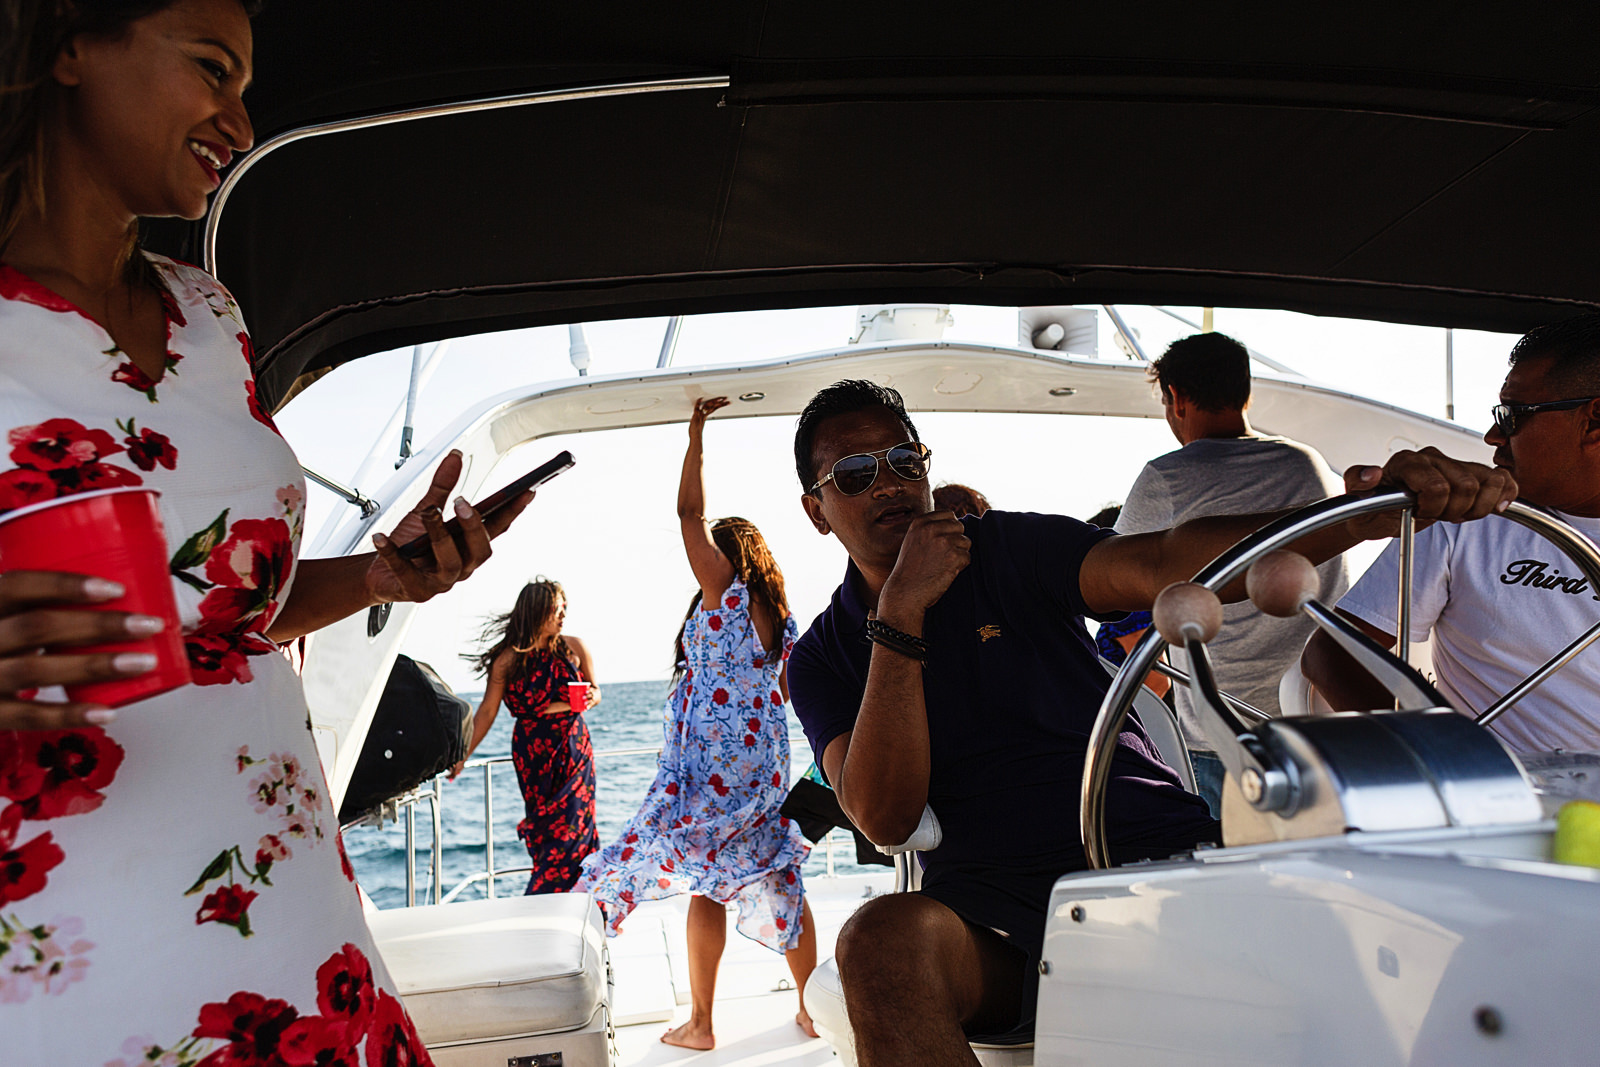 A man steering the yacht while the rest party and dance